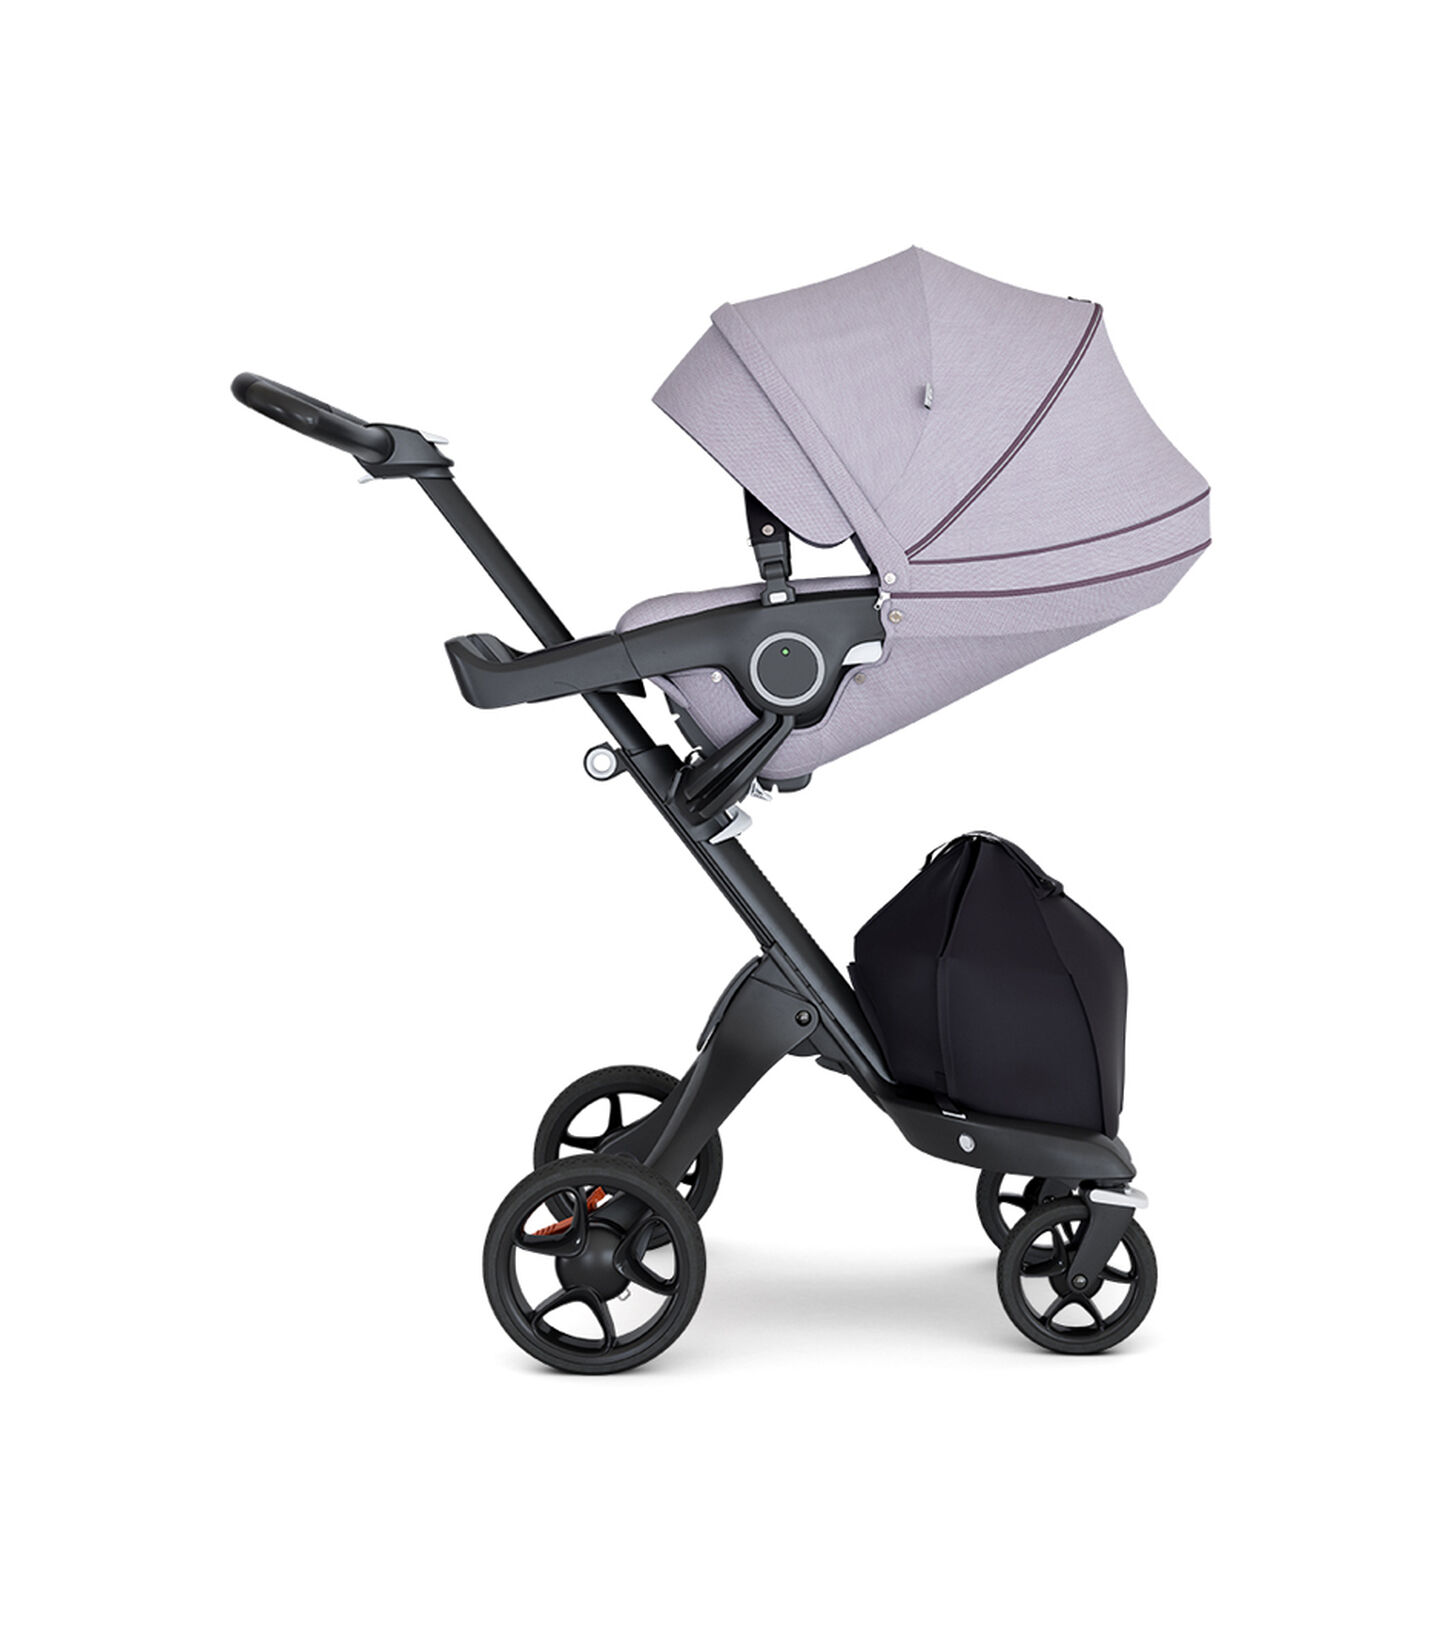 Stokke® Xplory® with Black Chassis and Leatherette Black handle. Stokke® Stroller Seat Brushed Lilac with extended canopy.